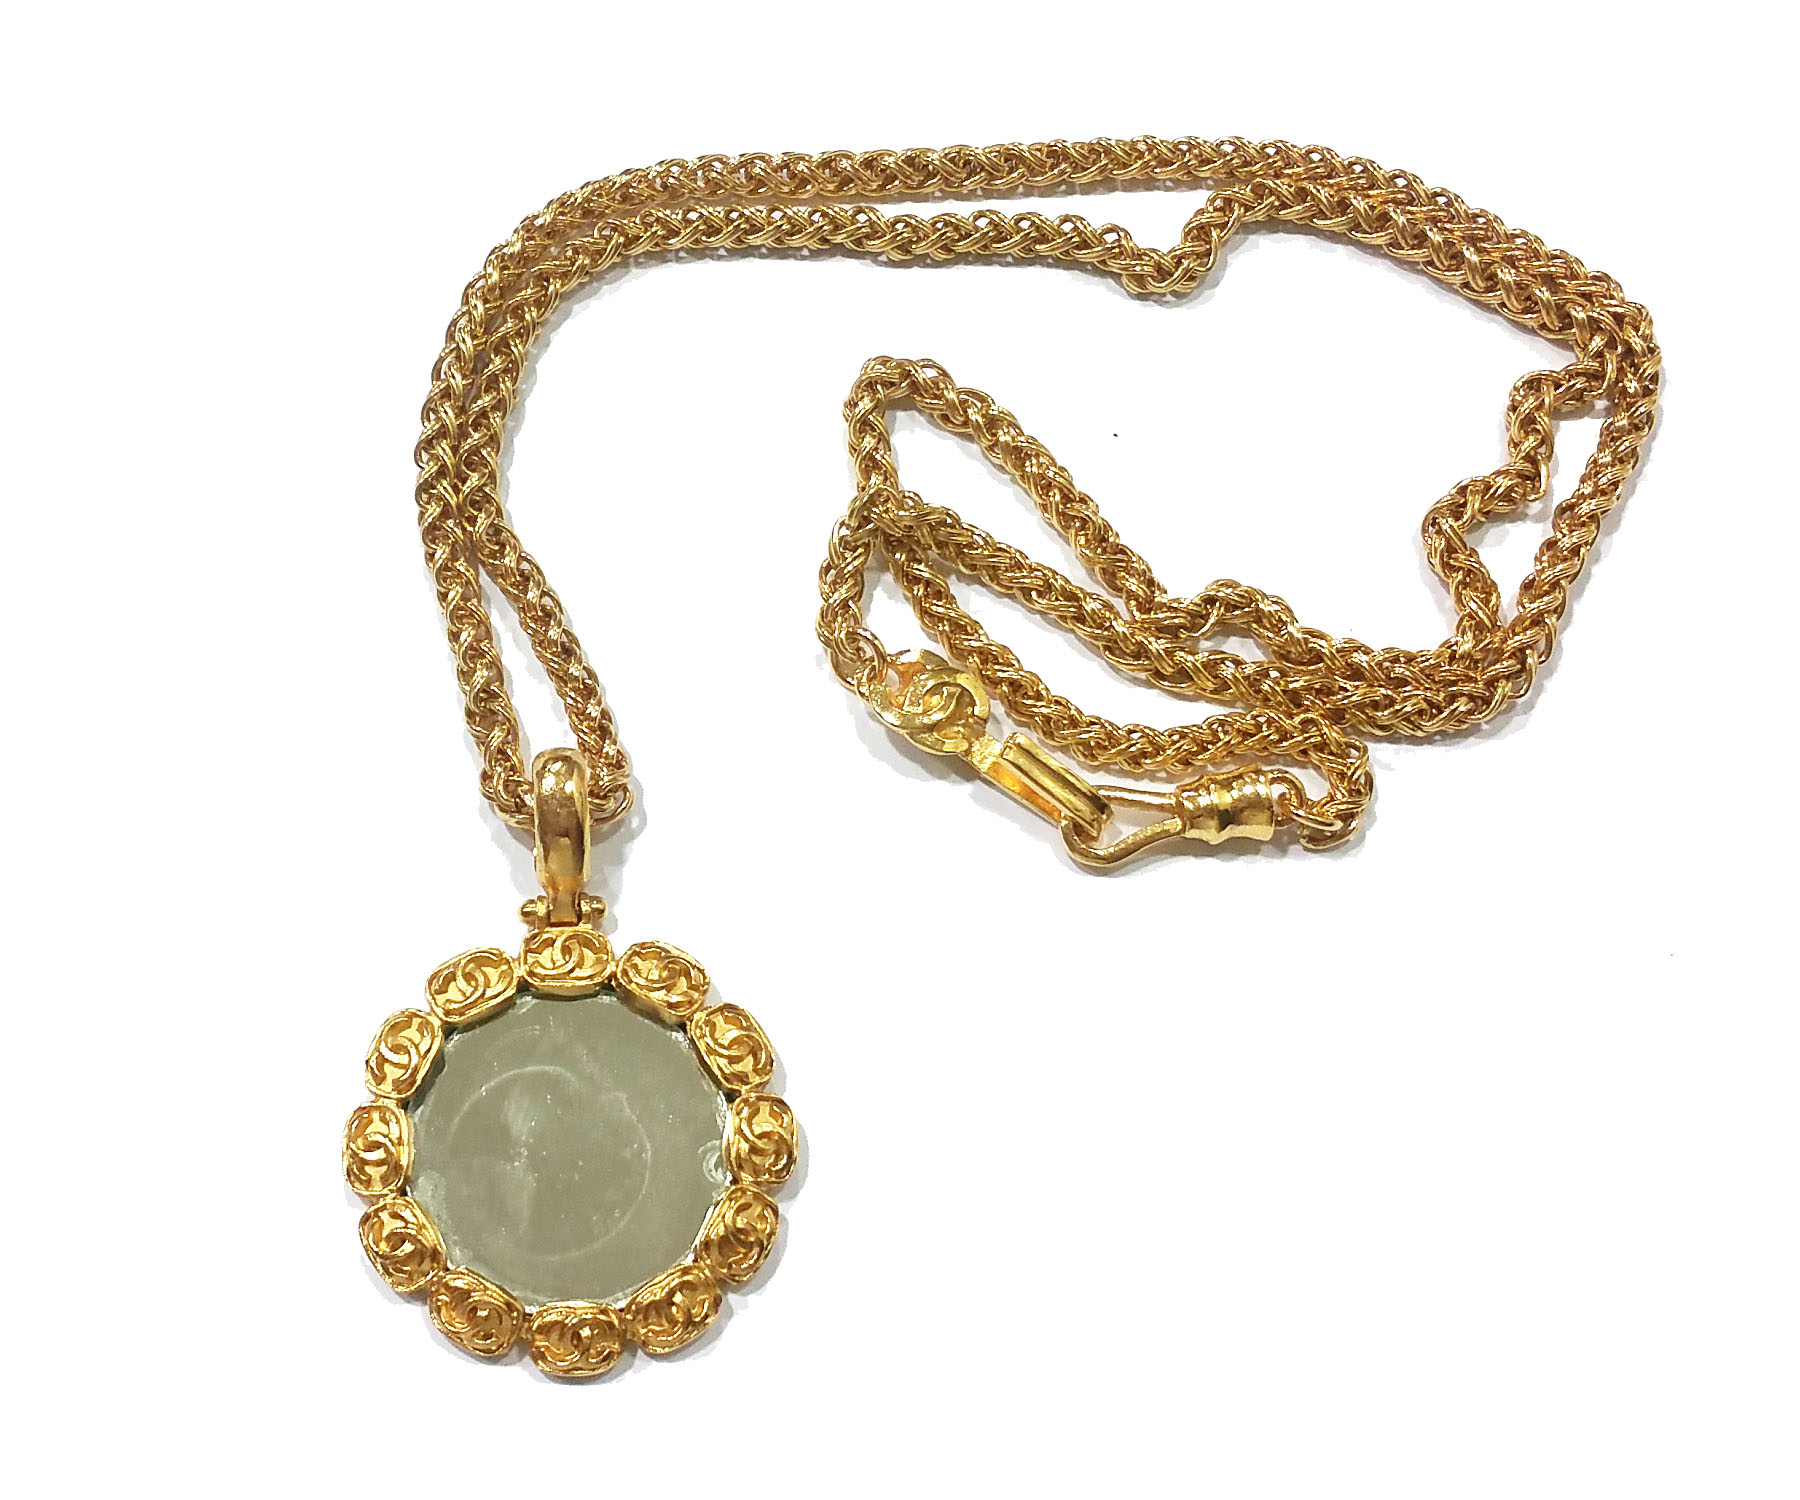 Authentic Vintage Chanel Gold Plated Cc Round Mirror Large Pendant Necklace Lar